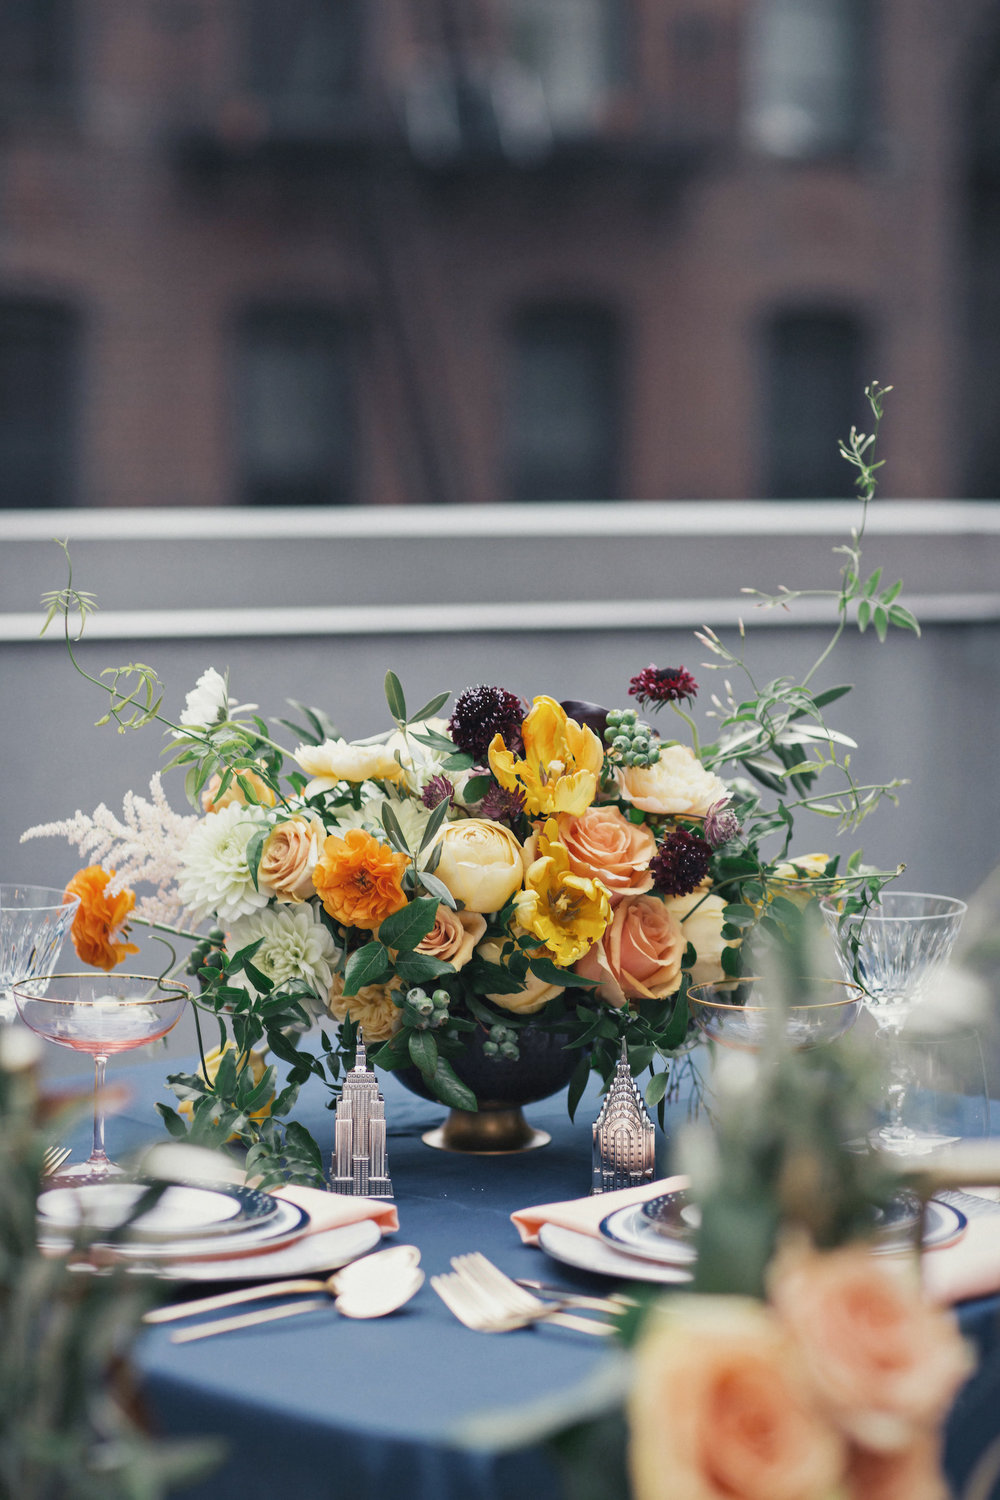 Thursday, June 12, 2014 Styled shoot in DUMBO Brooklyn, NY and Midtown Manhattan.